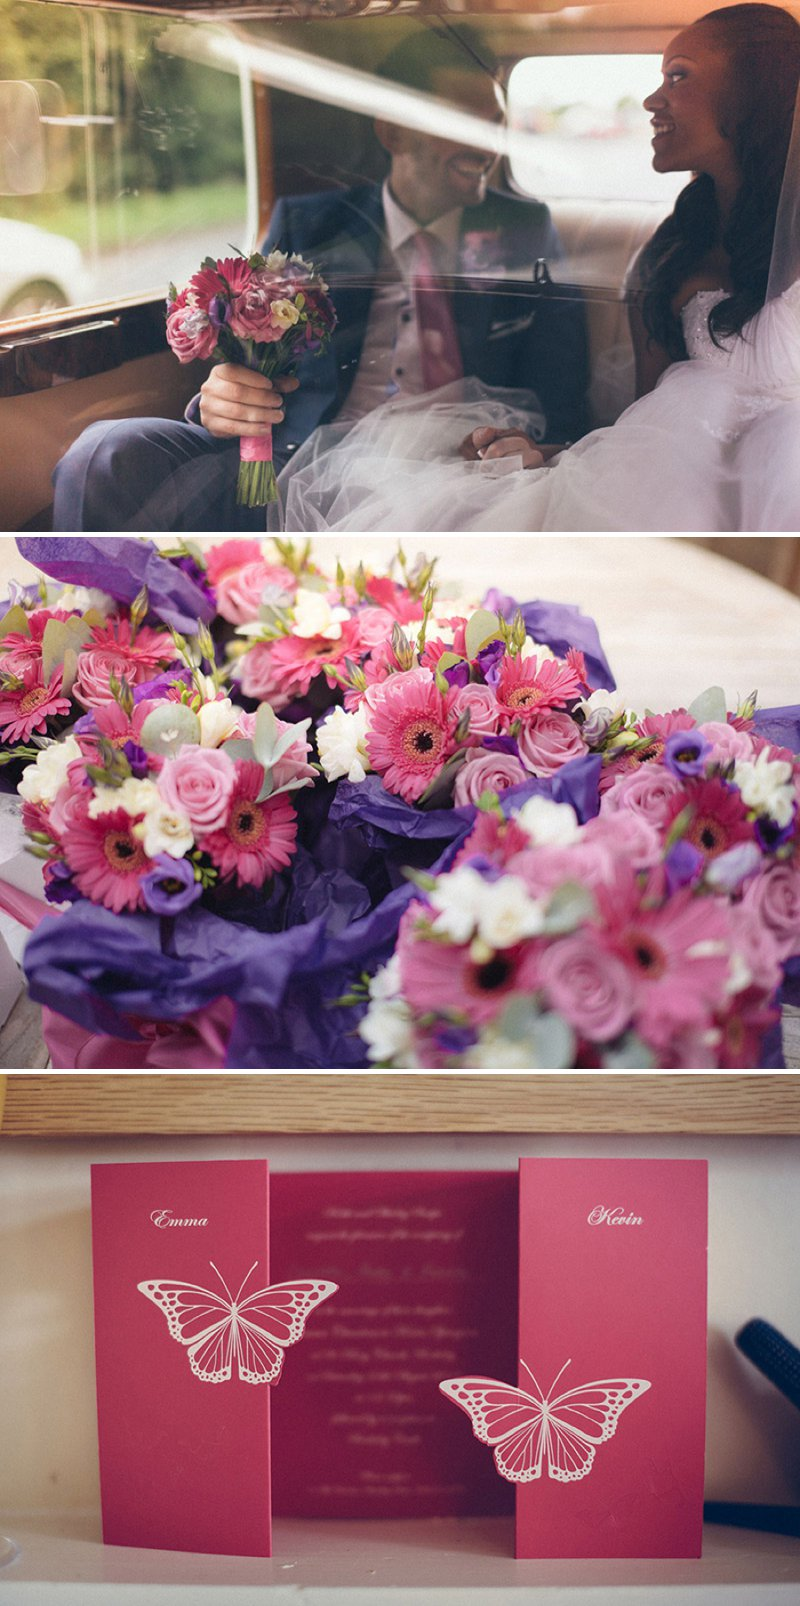 A Fairytale Castle Wedding At Berkeley Castle In Gloucestershire With Bride In Chardonnay By Maggie Soterro And Groom In Reiss With A Fushcia Pink And Cadbury Purple Colour Scheme And Images From Joseph Hall Photography 1